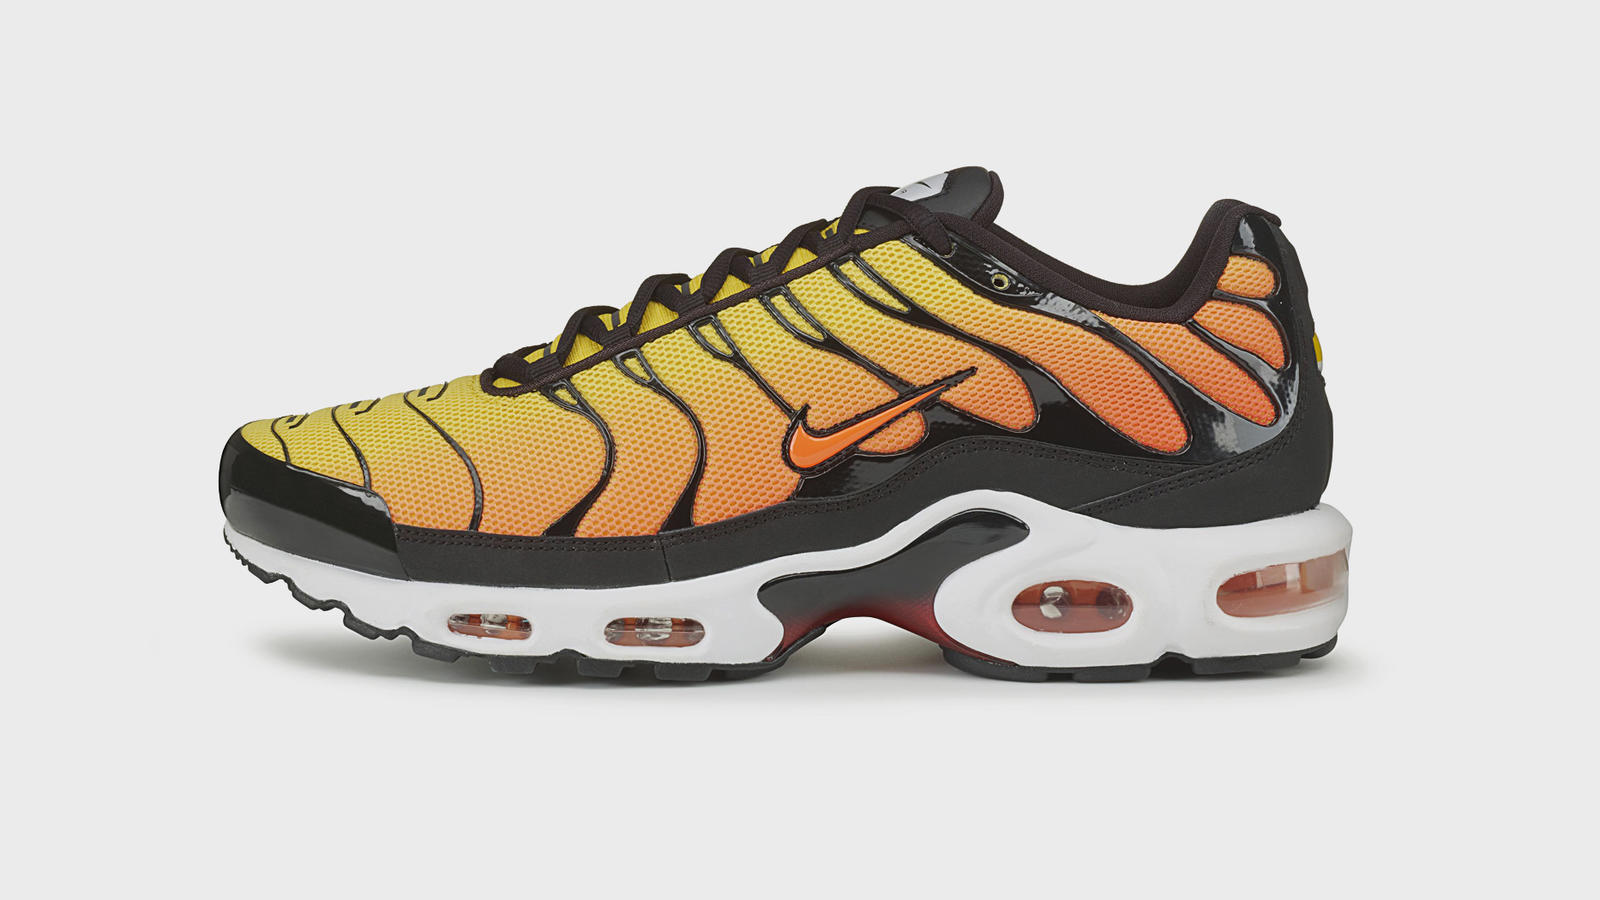 best value 6a8f2 256e7 Nike Air Max Plus TN History - Nike News